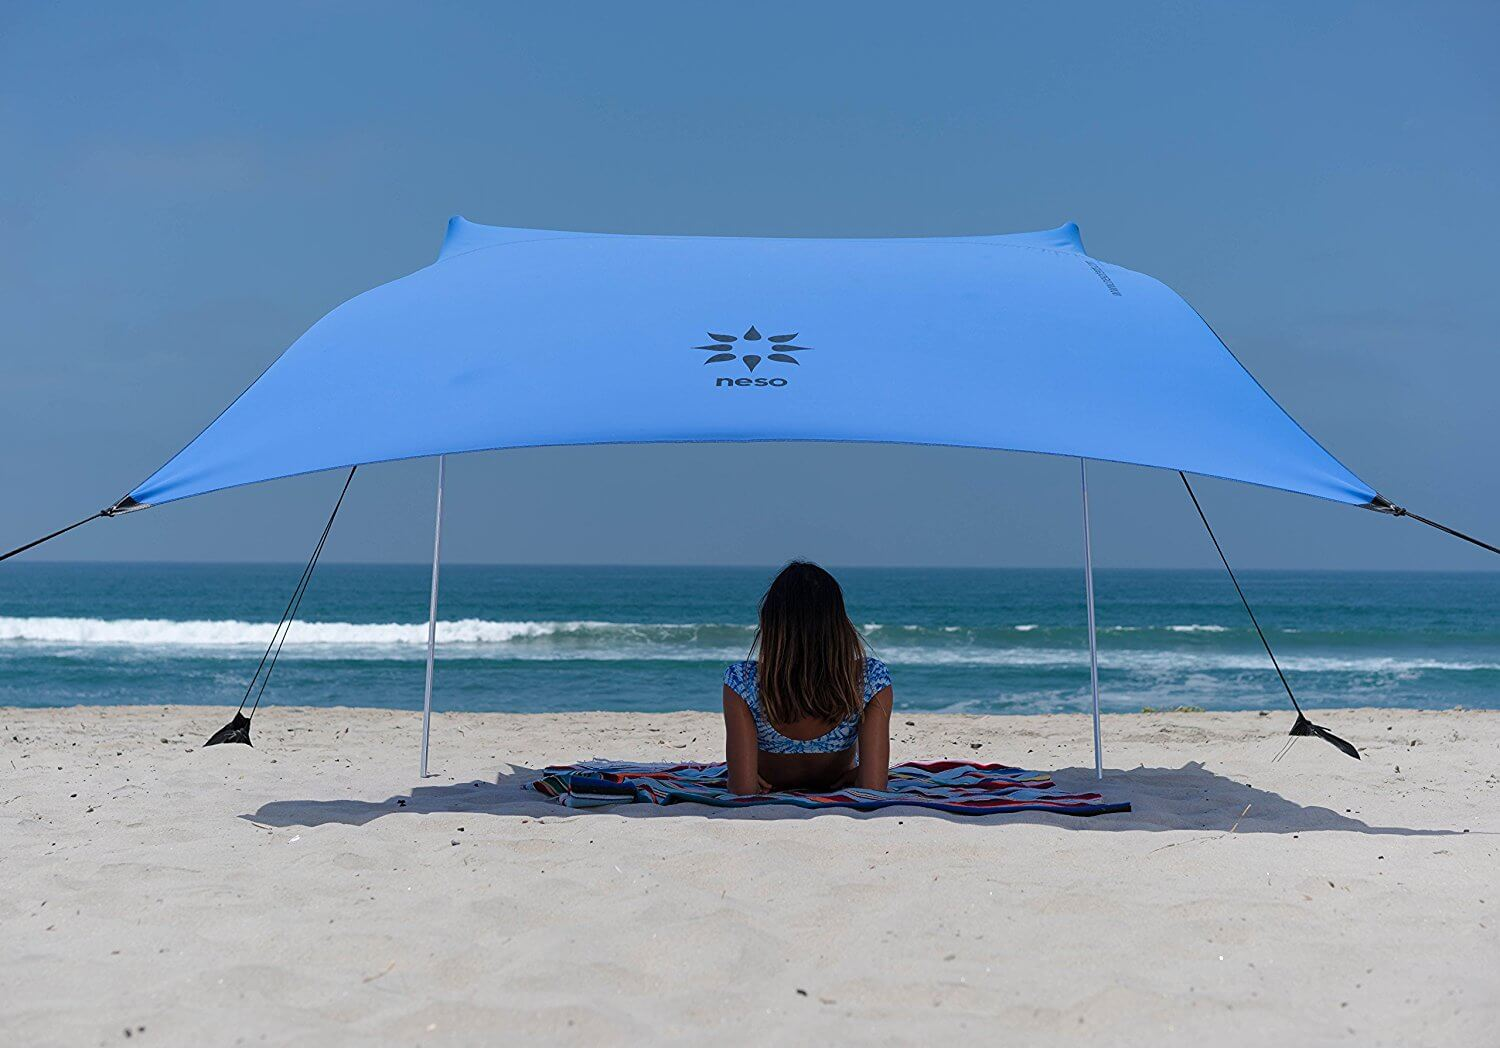 Neso Tents Beach Tent with Sand Anchor Portable Canopy SunShade - 7u0027 x 7 : cheap canopy tents - memphite.com